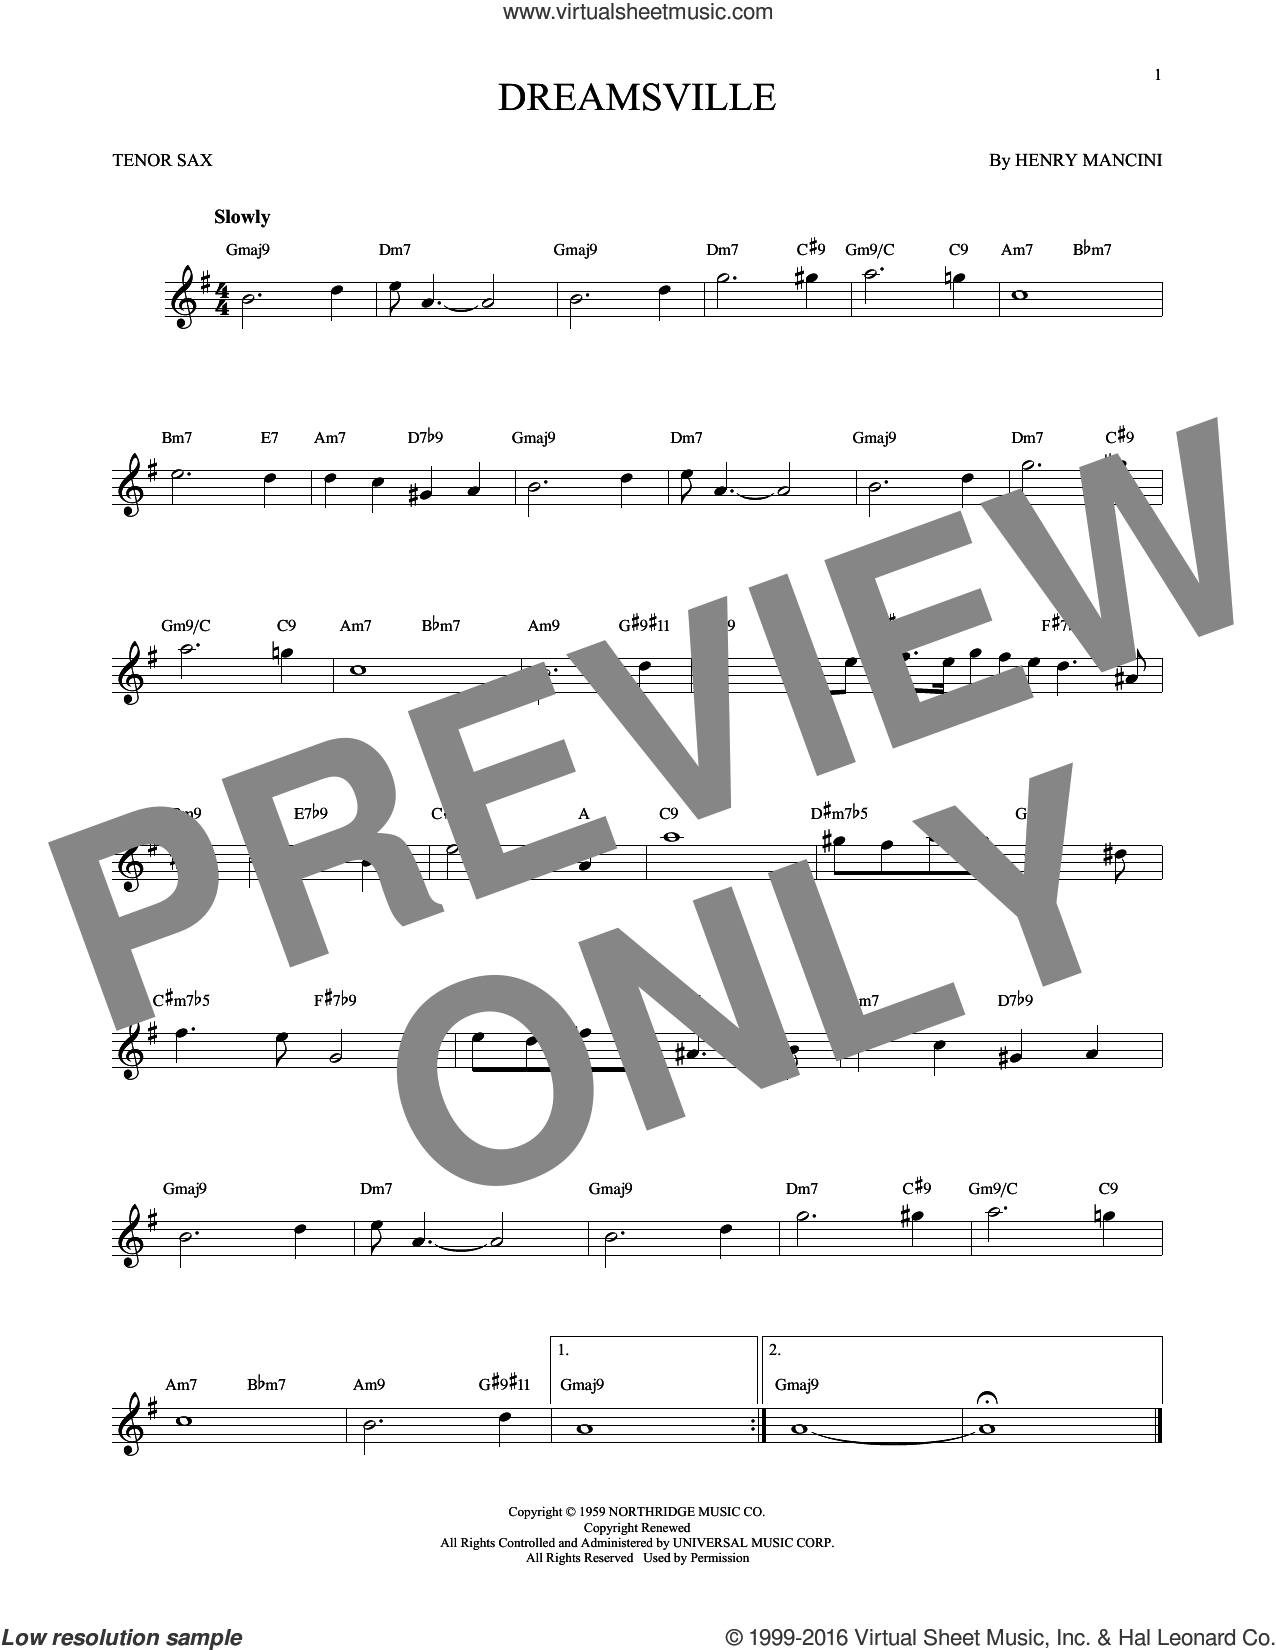 Dreamsville sheet music for tenor saxophone solo by Henry Mancini, intermediate skill level